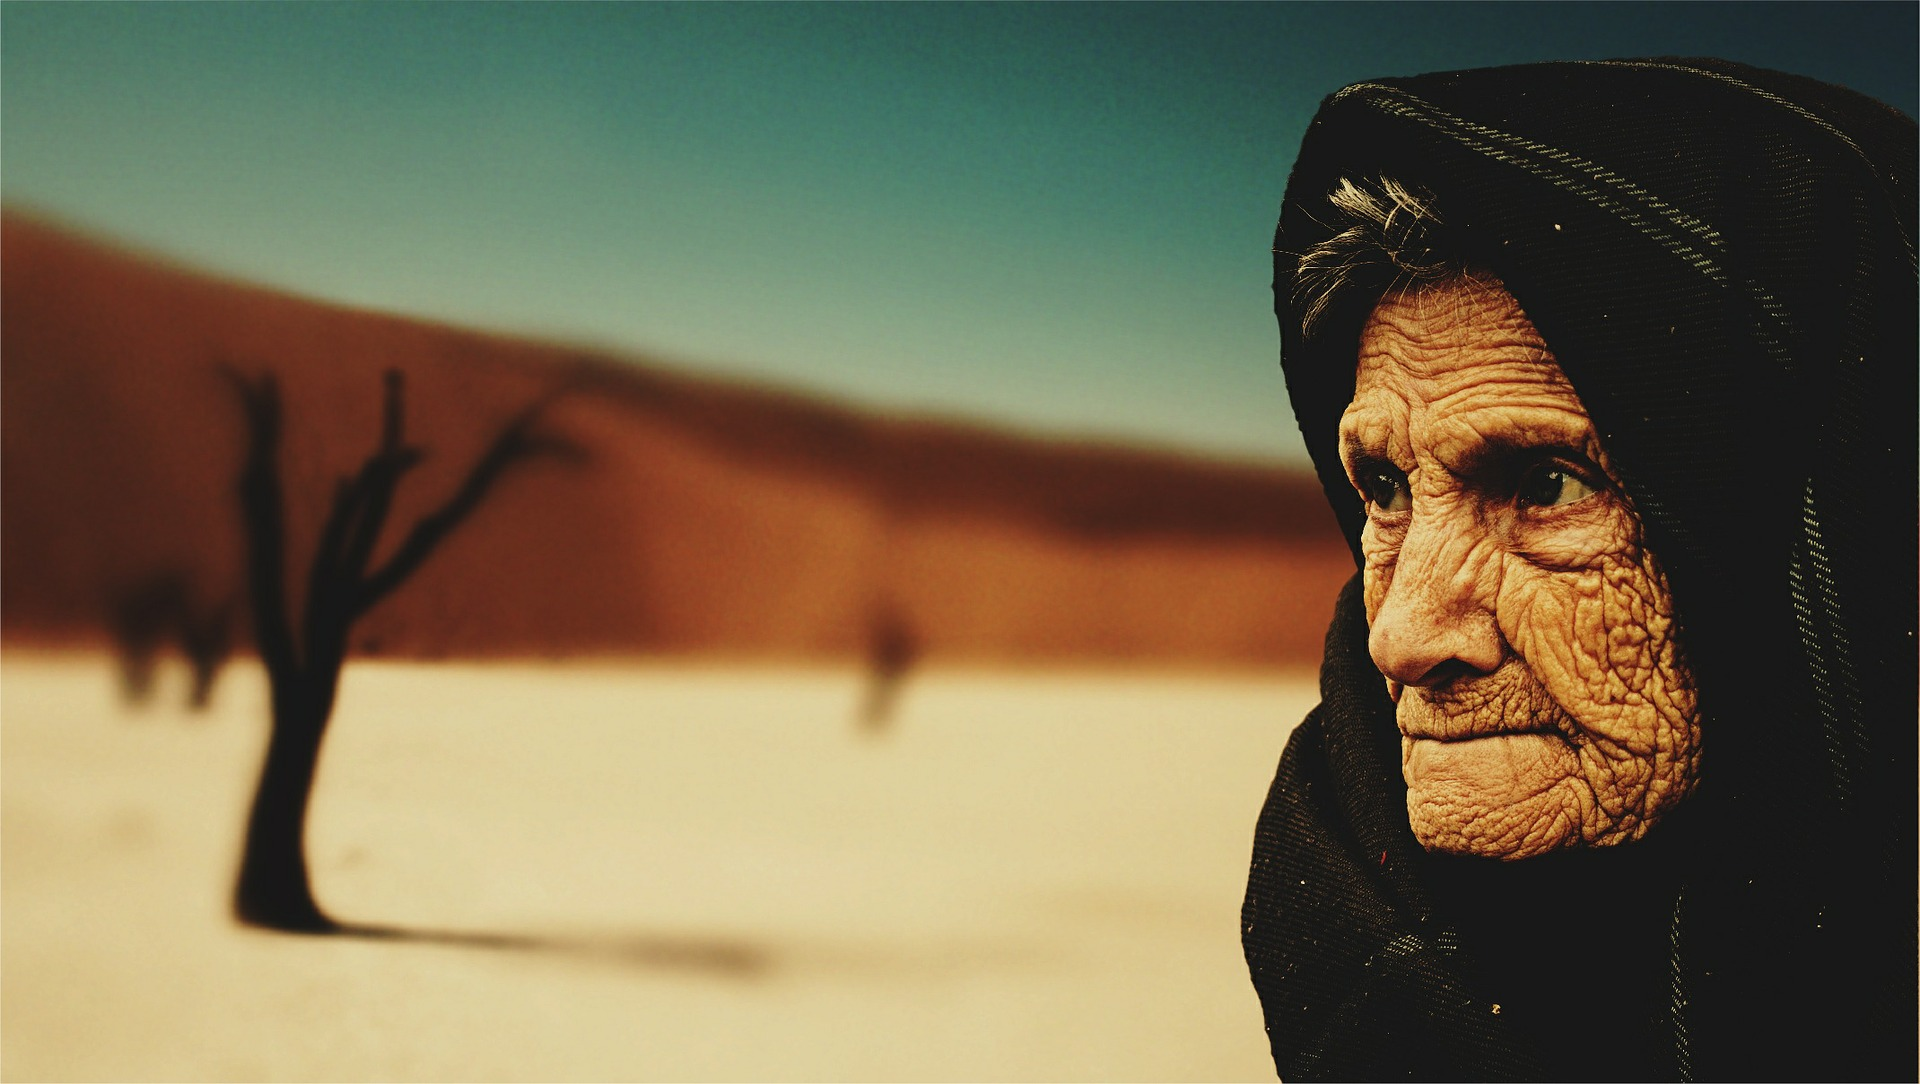 old-woman-574278_1920